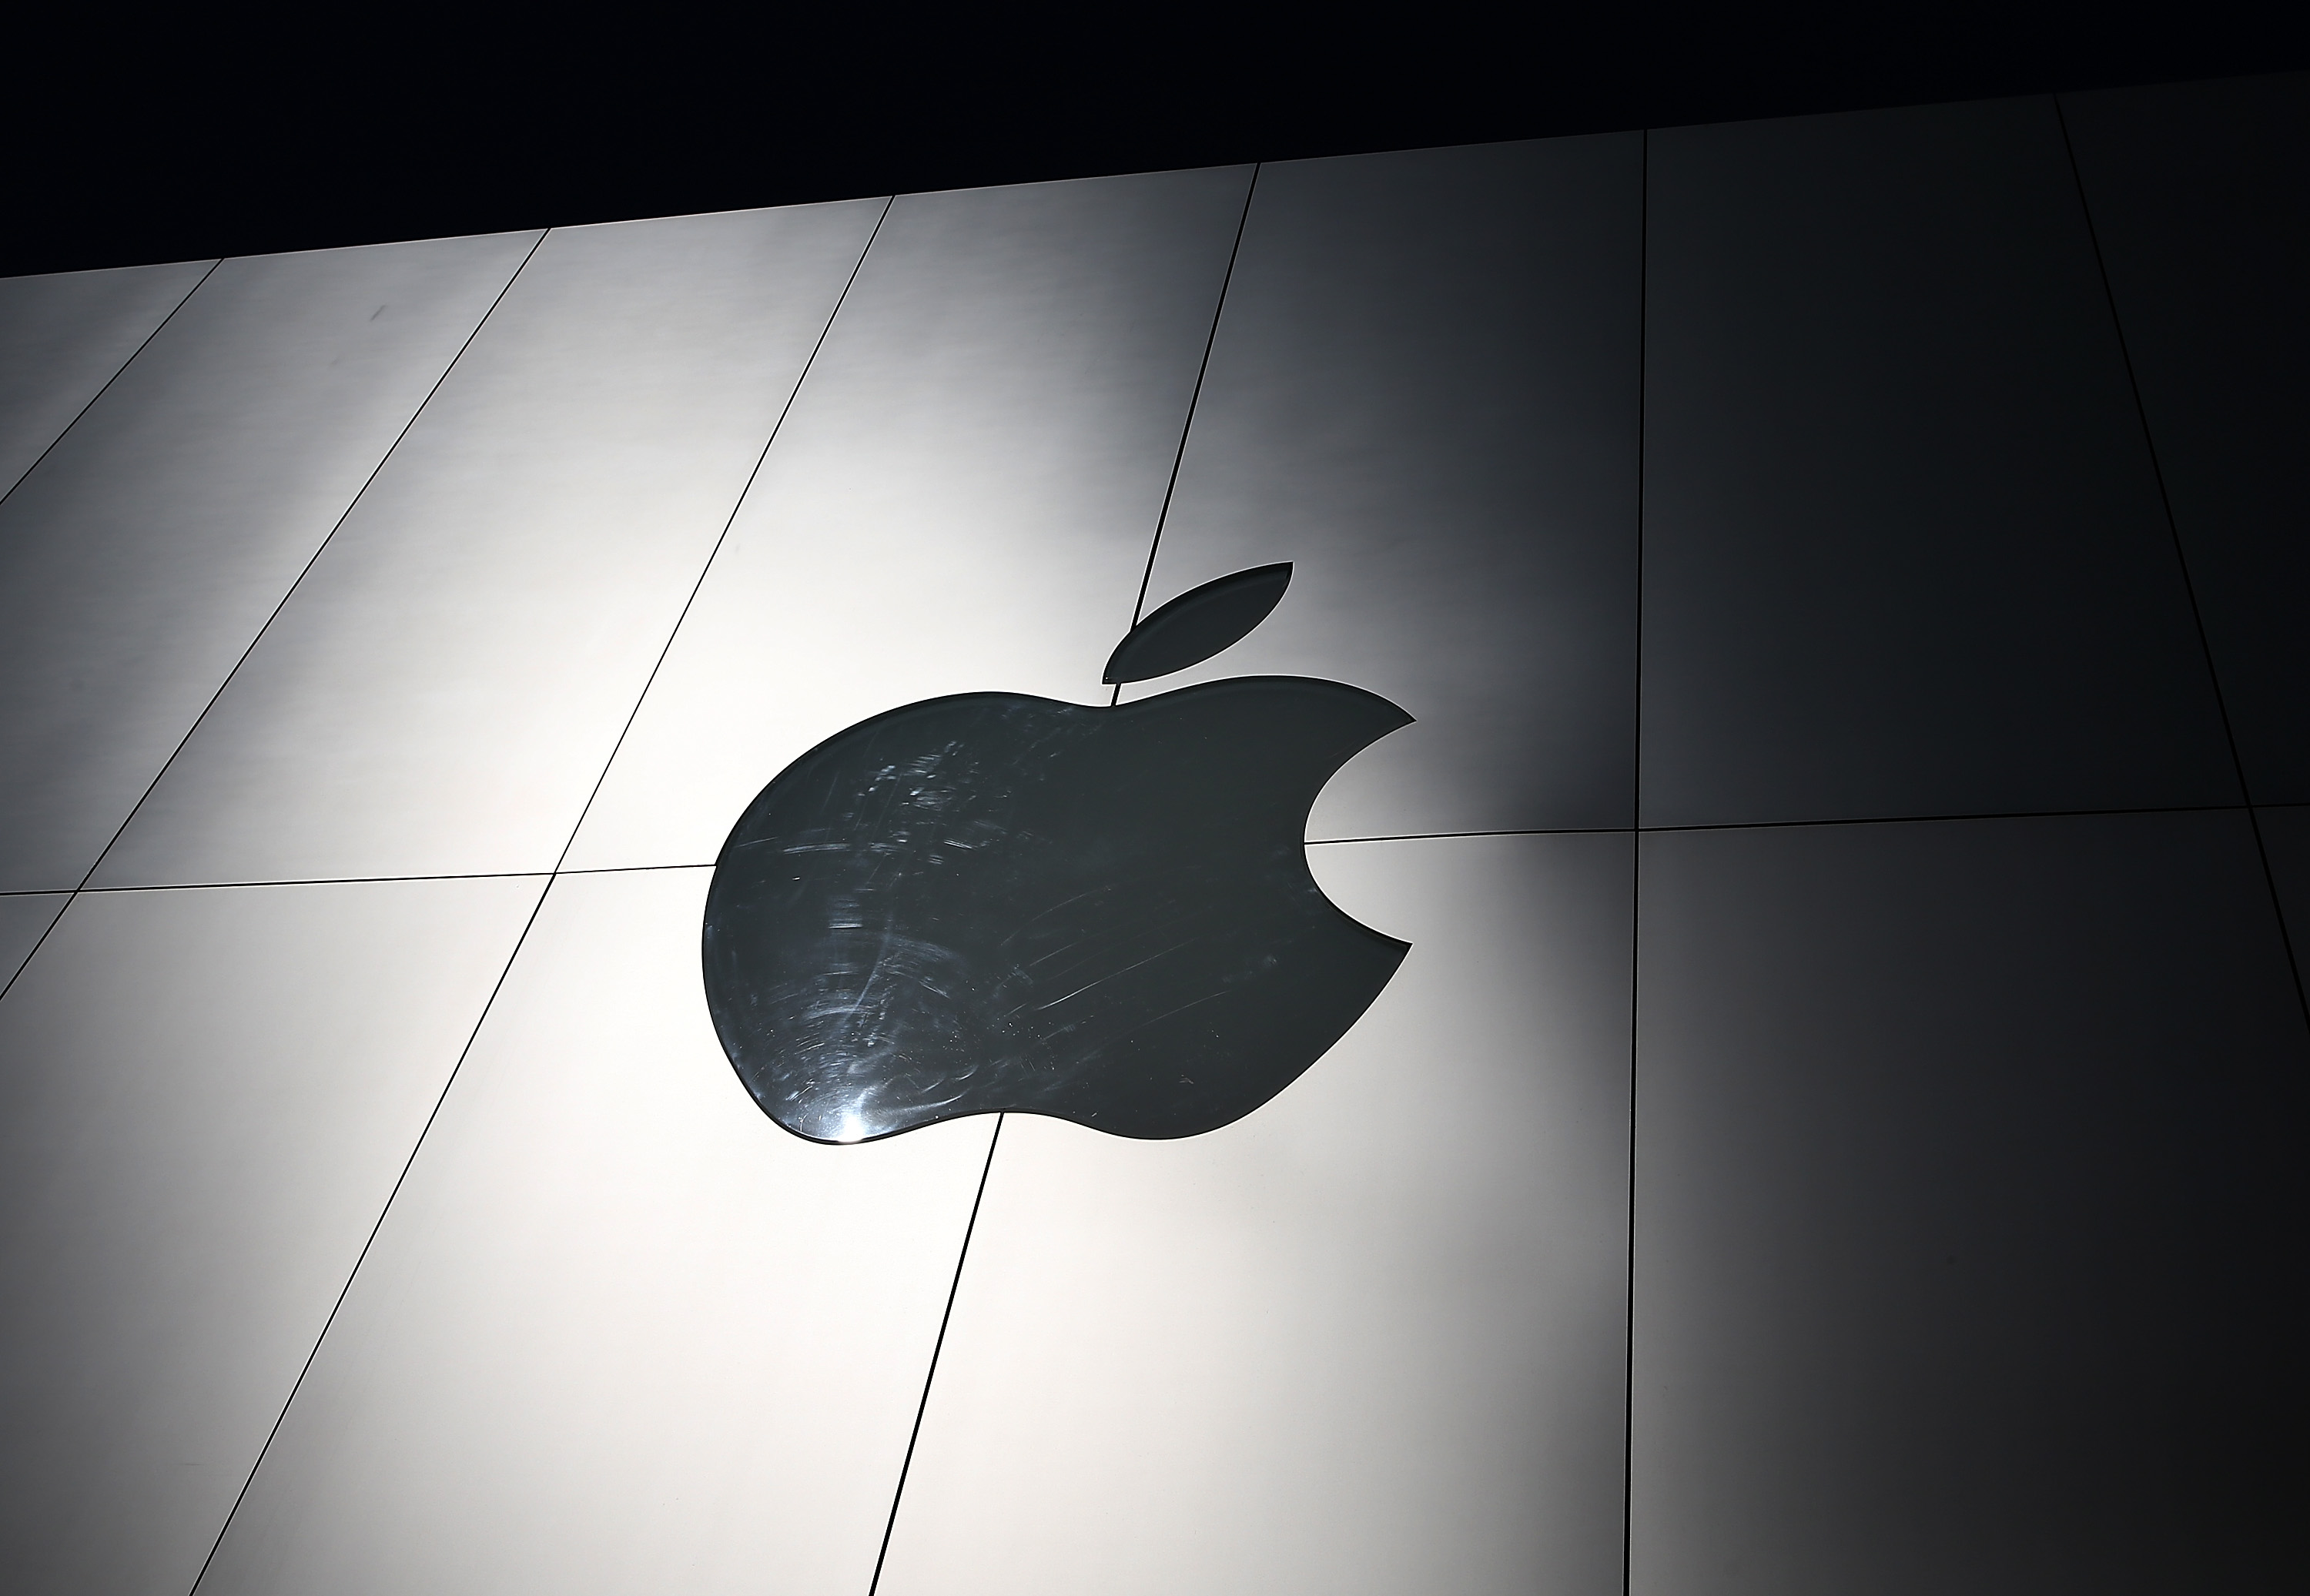 Apple Must Pay $533 Million for Patent Infringement, Judge Says